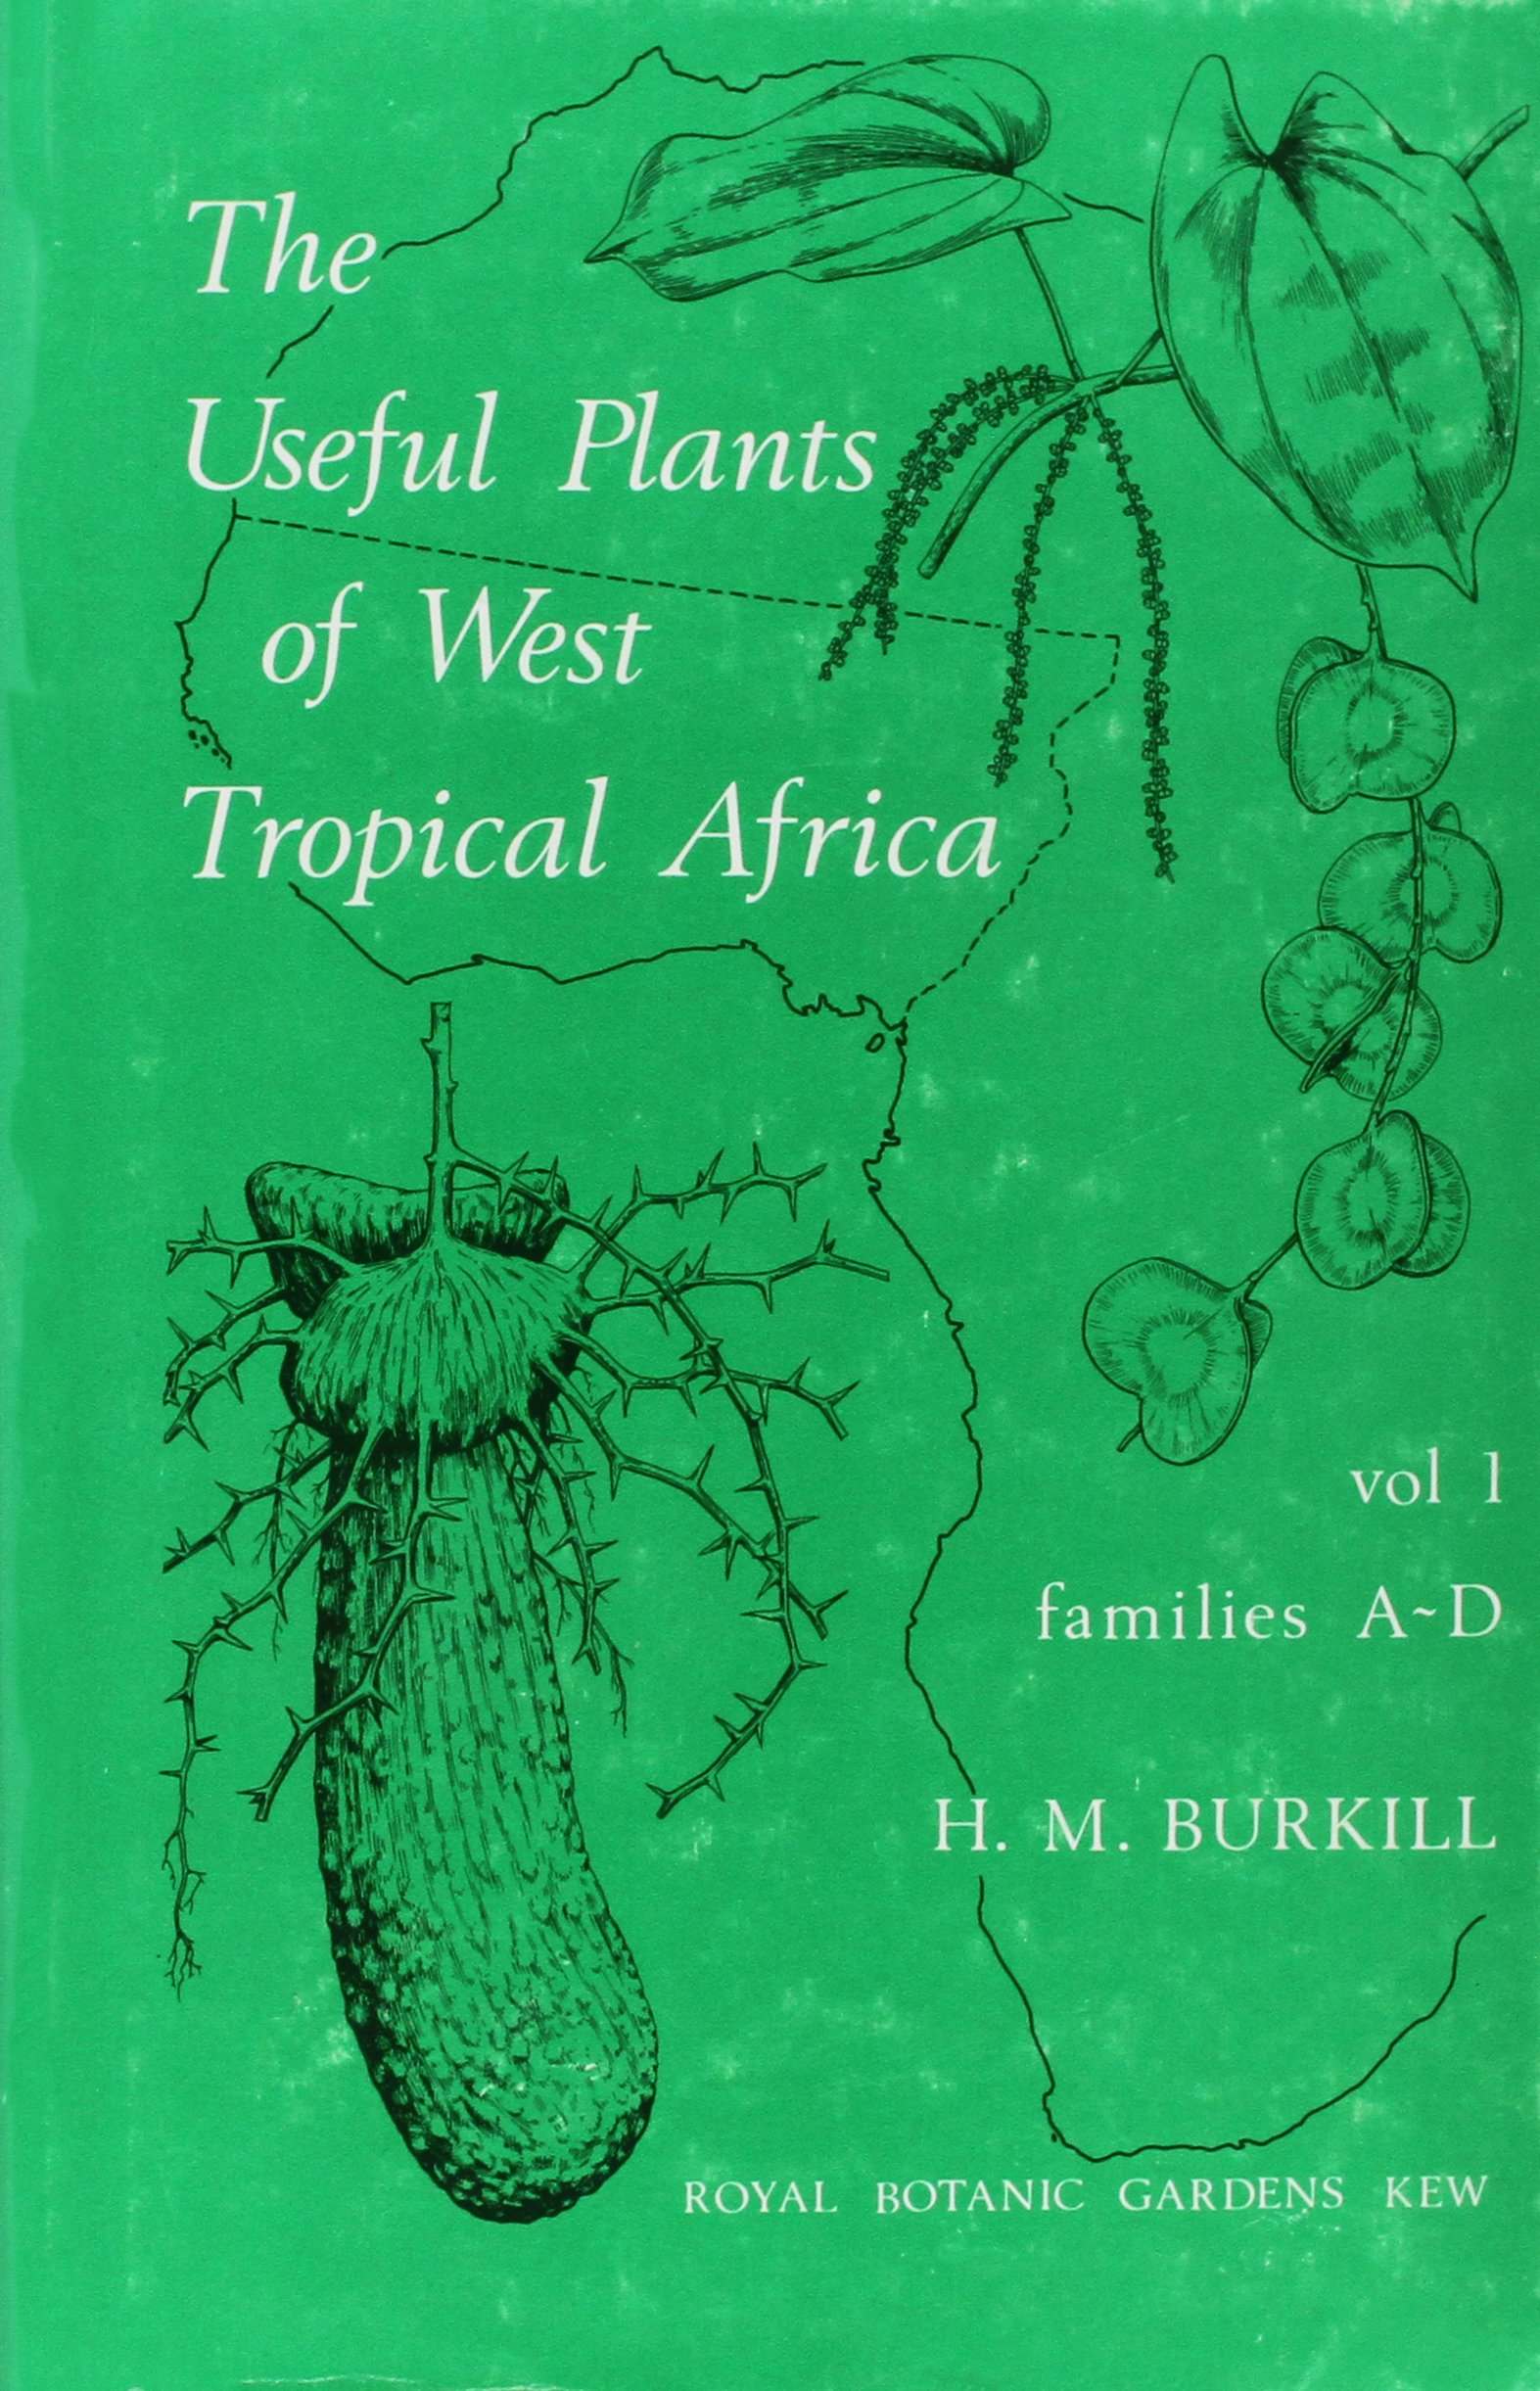 Useful Plants of West Tropical Africa Volume 1